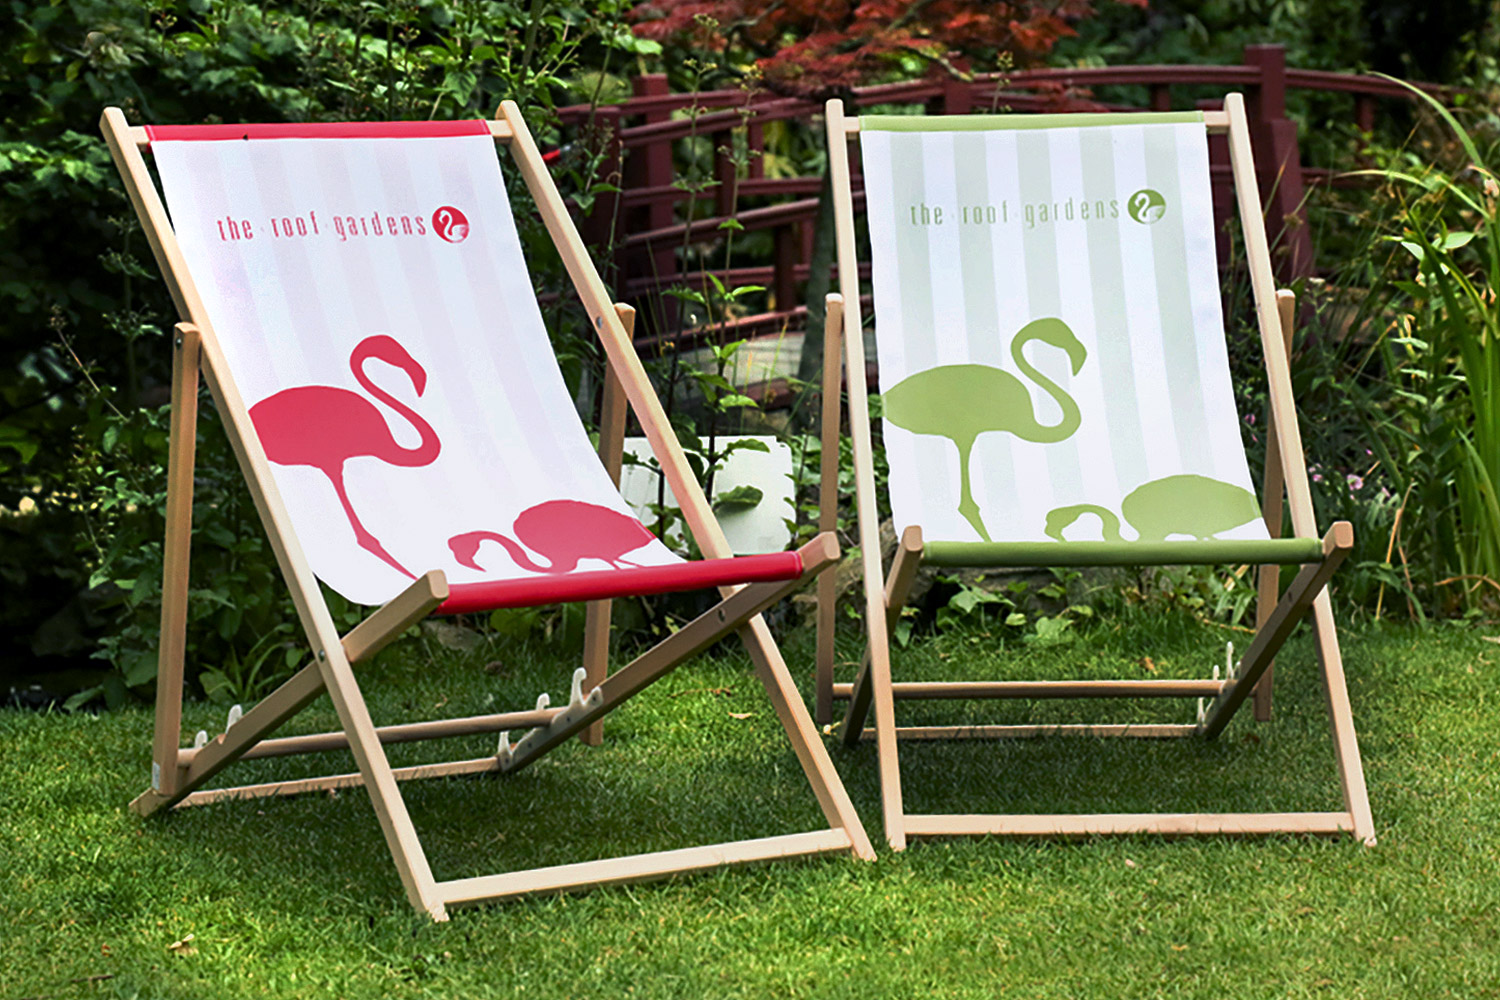 rg-deck-chairs-1500x1000